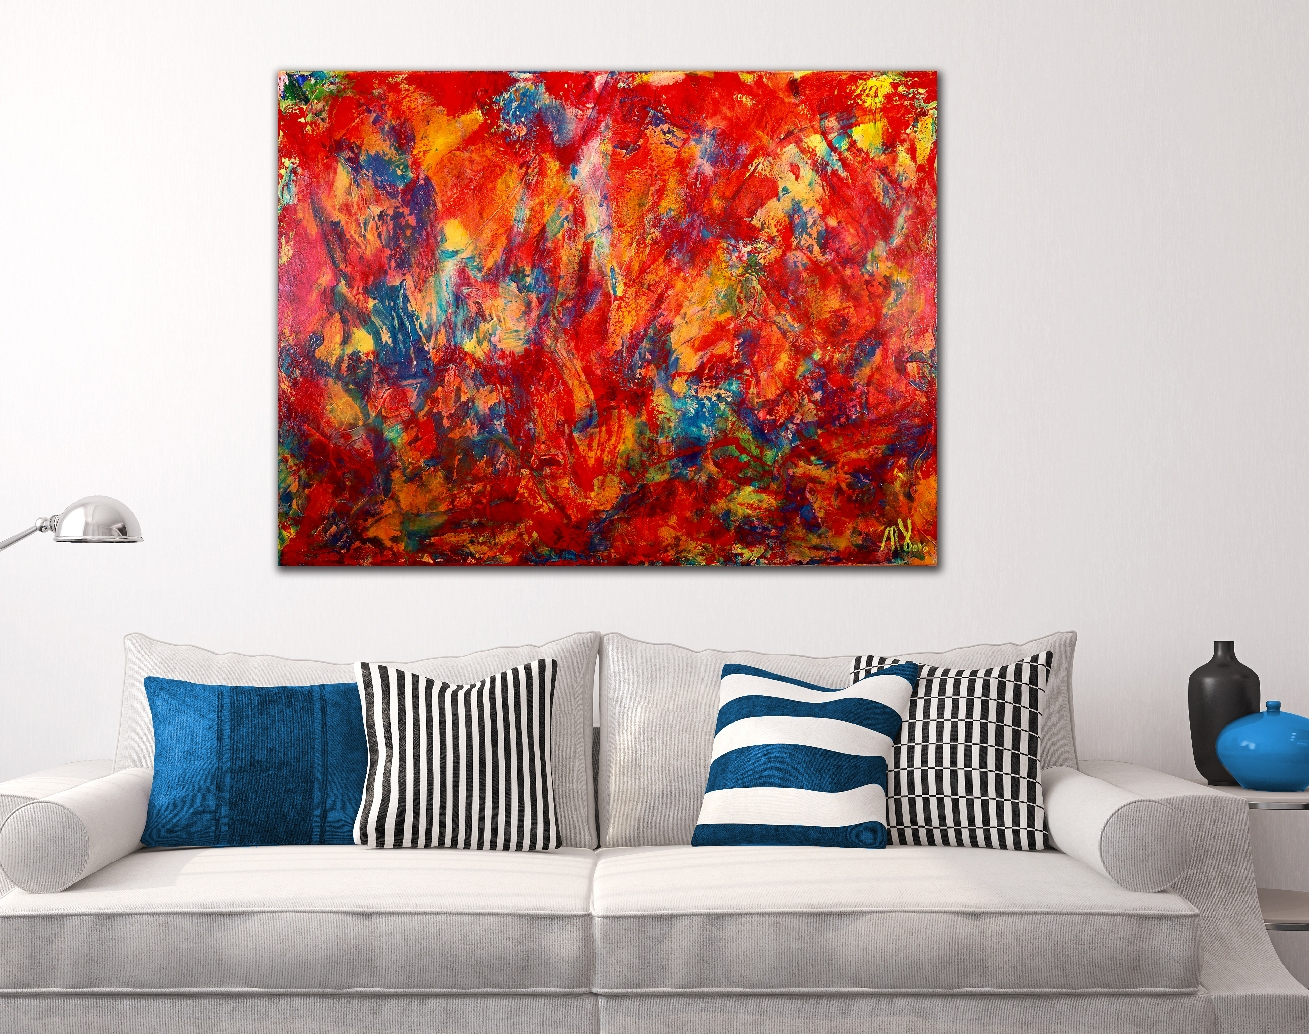 Red Abstract - BOLD STATEMENT ARTWORK! (2016) abstract art Acrylic painting by Nestor Toro